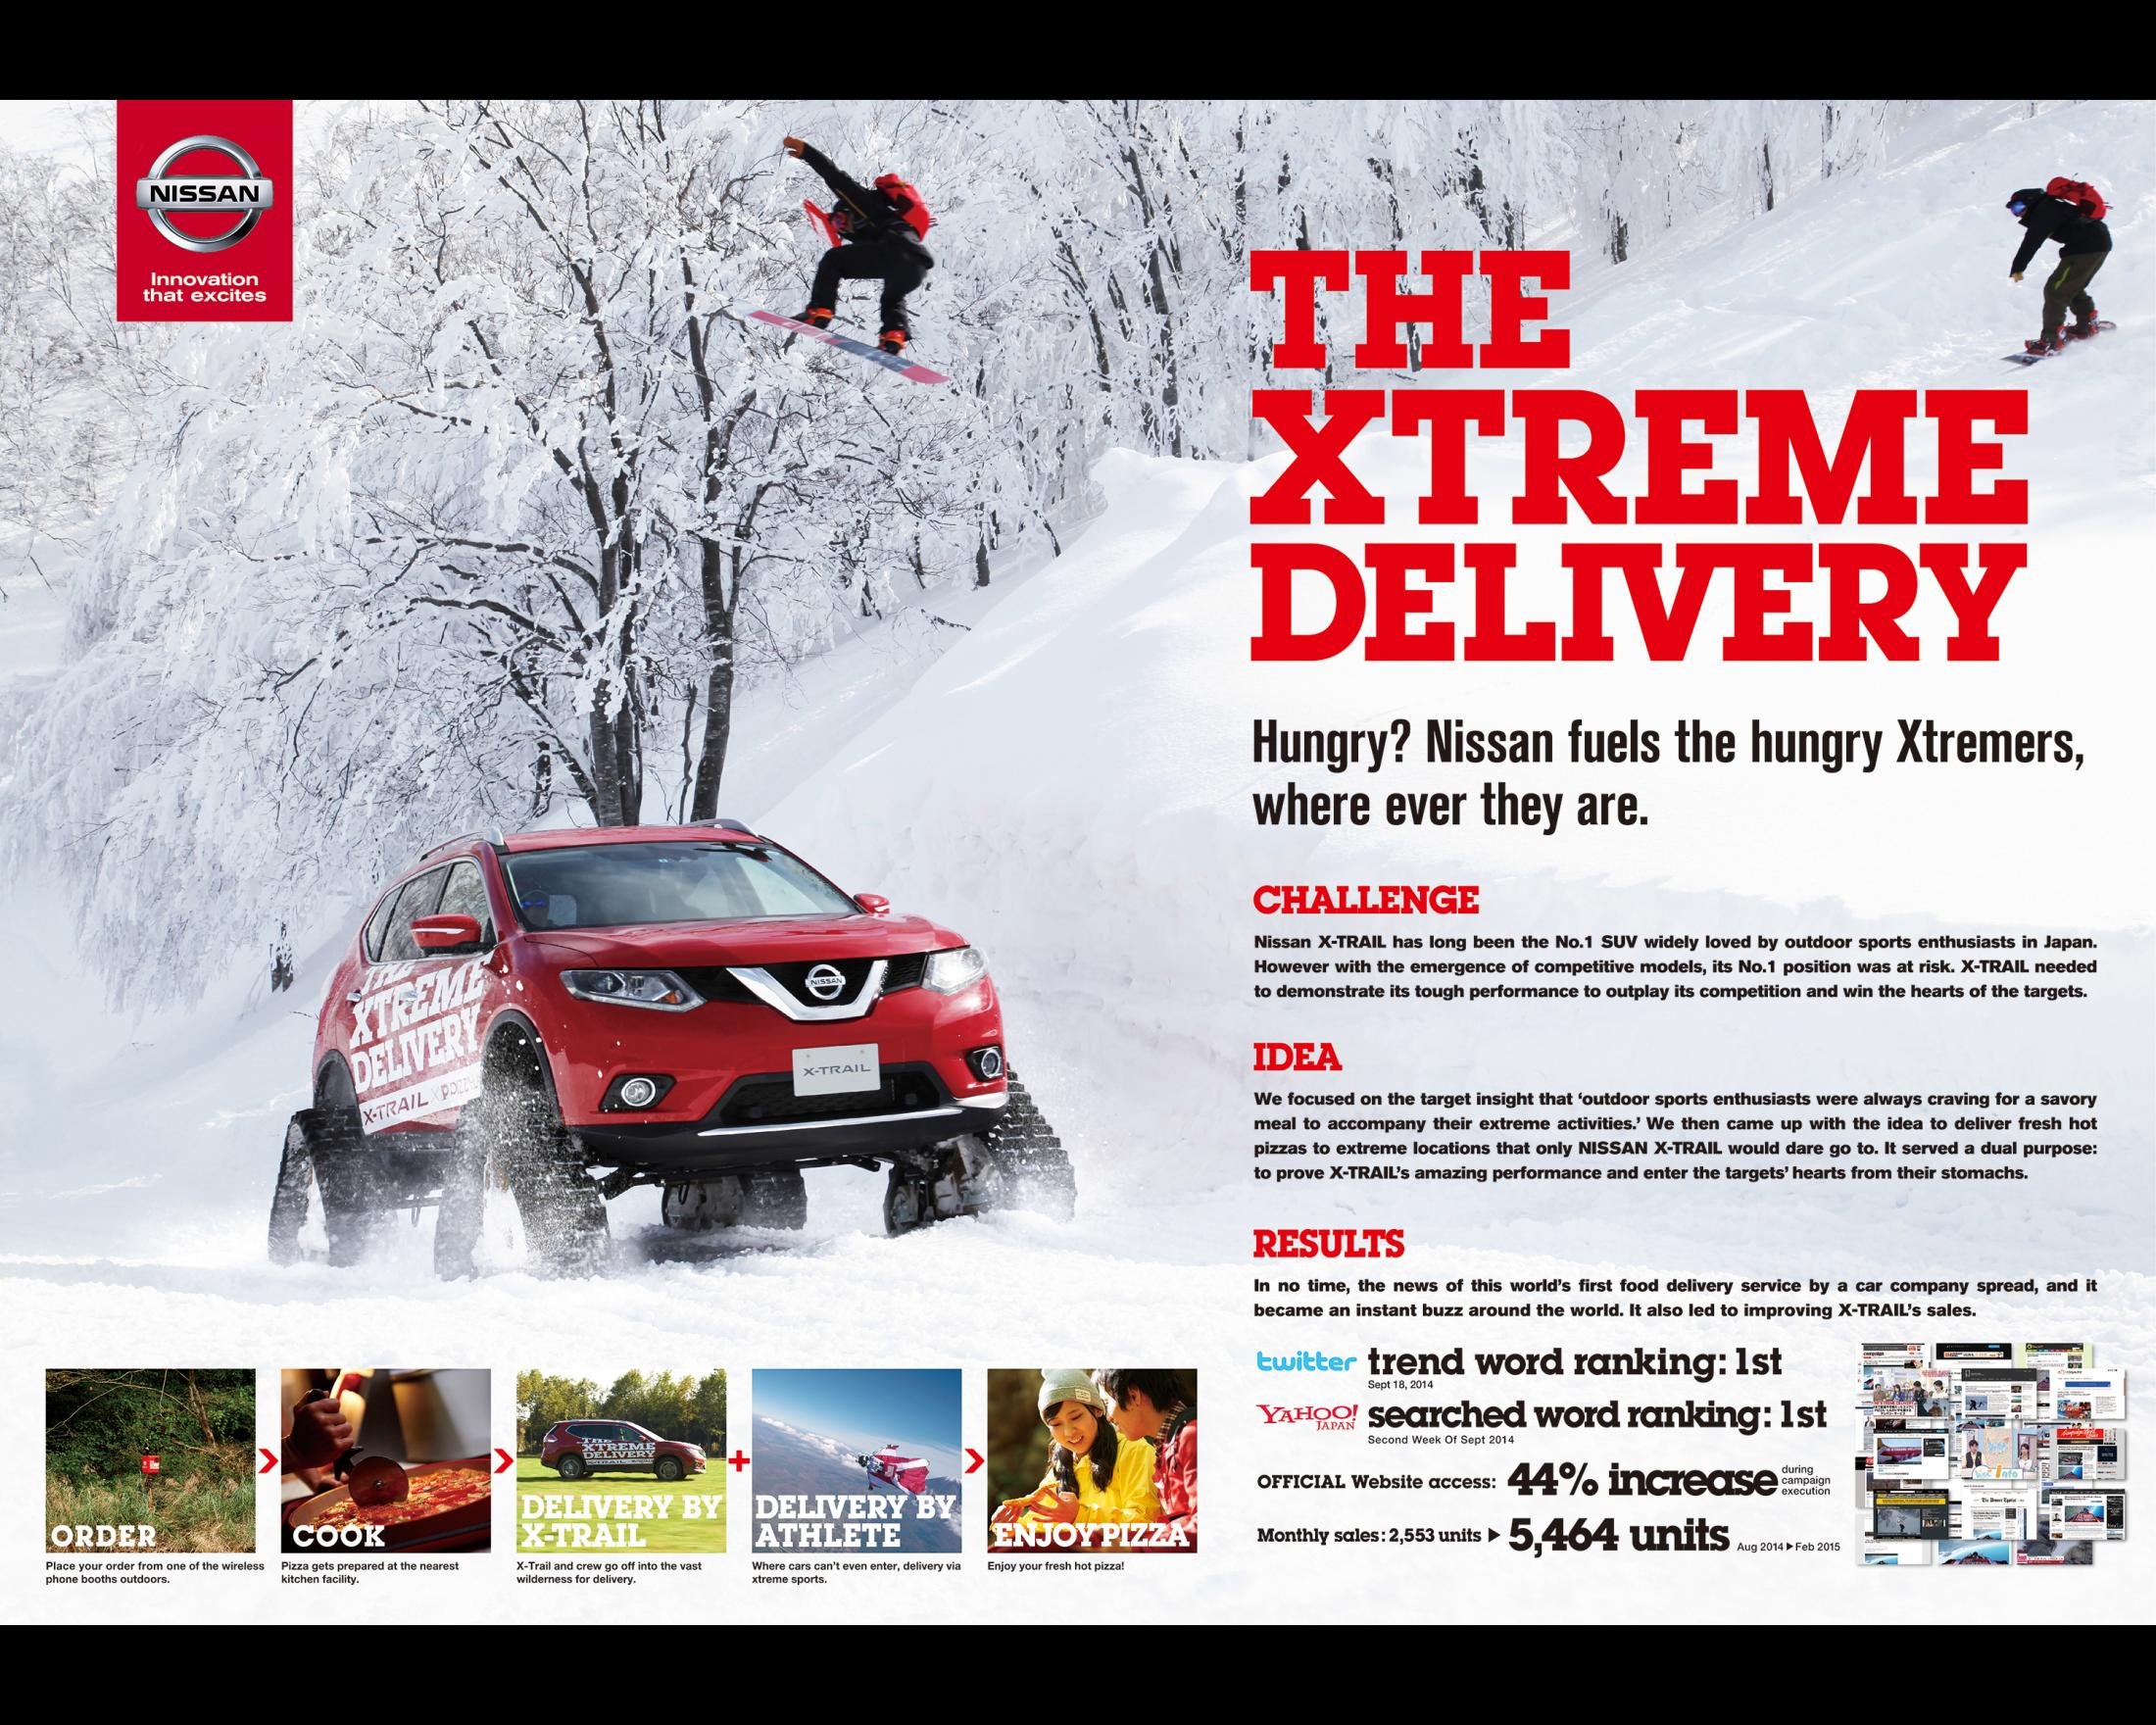 Thumbnail for THE XTREME DELIVERY